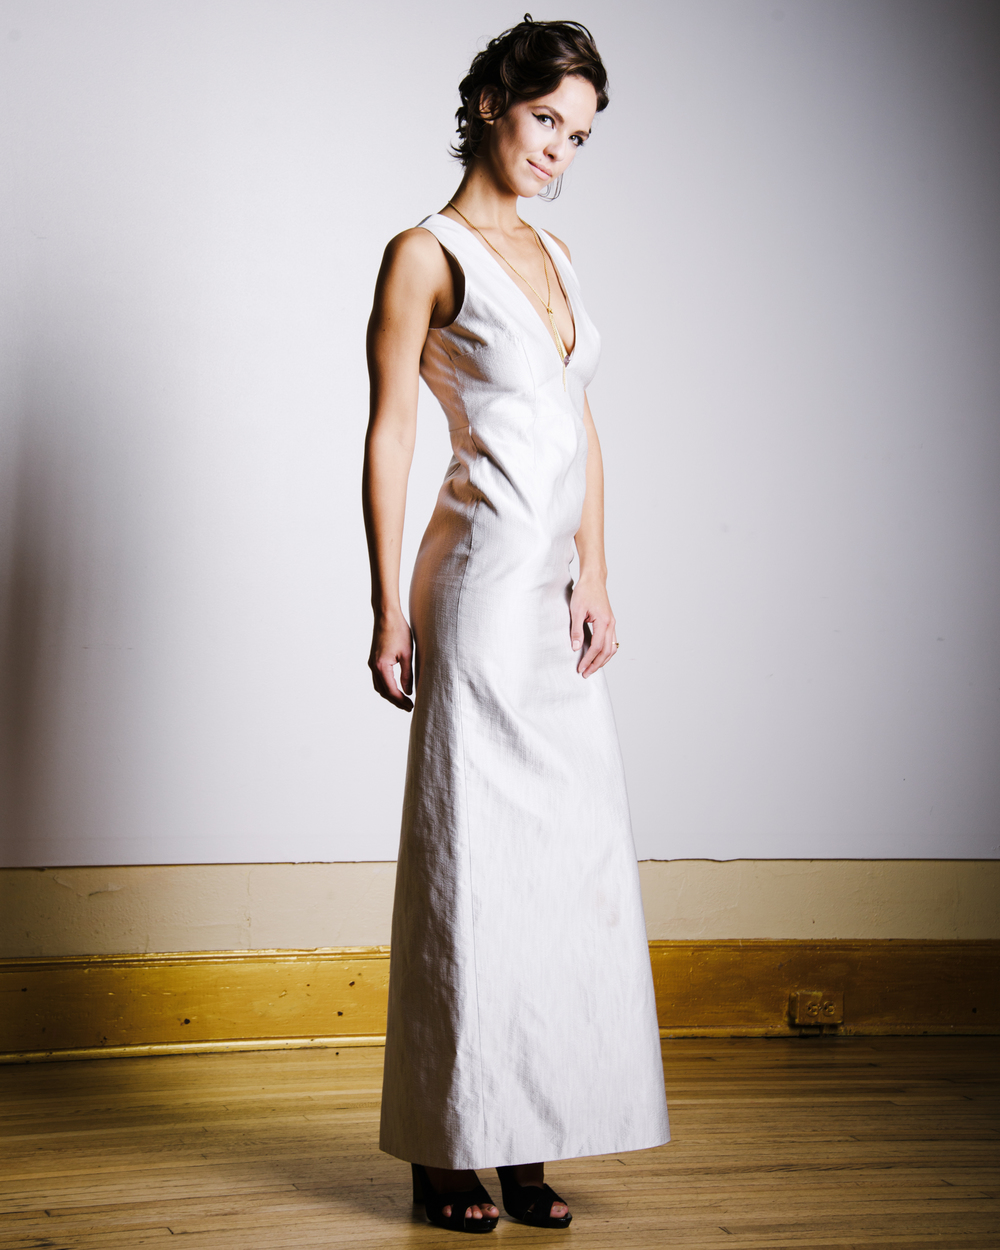 Sarah Johns wearing Angela Kim Designs - hair by Jenna Wilson of Love, Daisy - makeup by Daneille Southcott